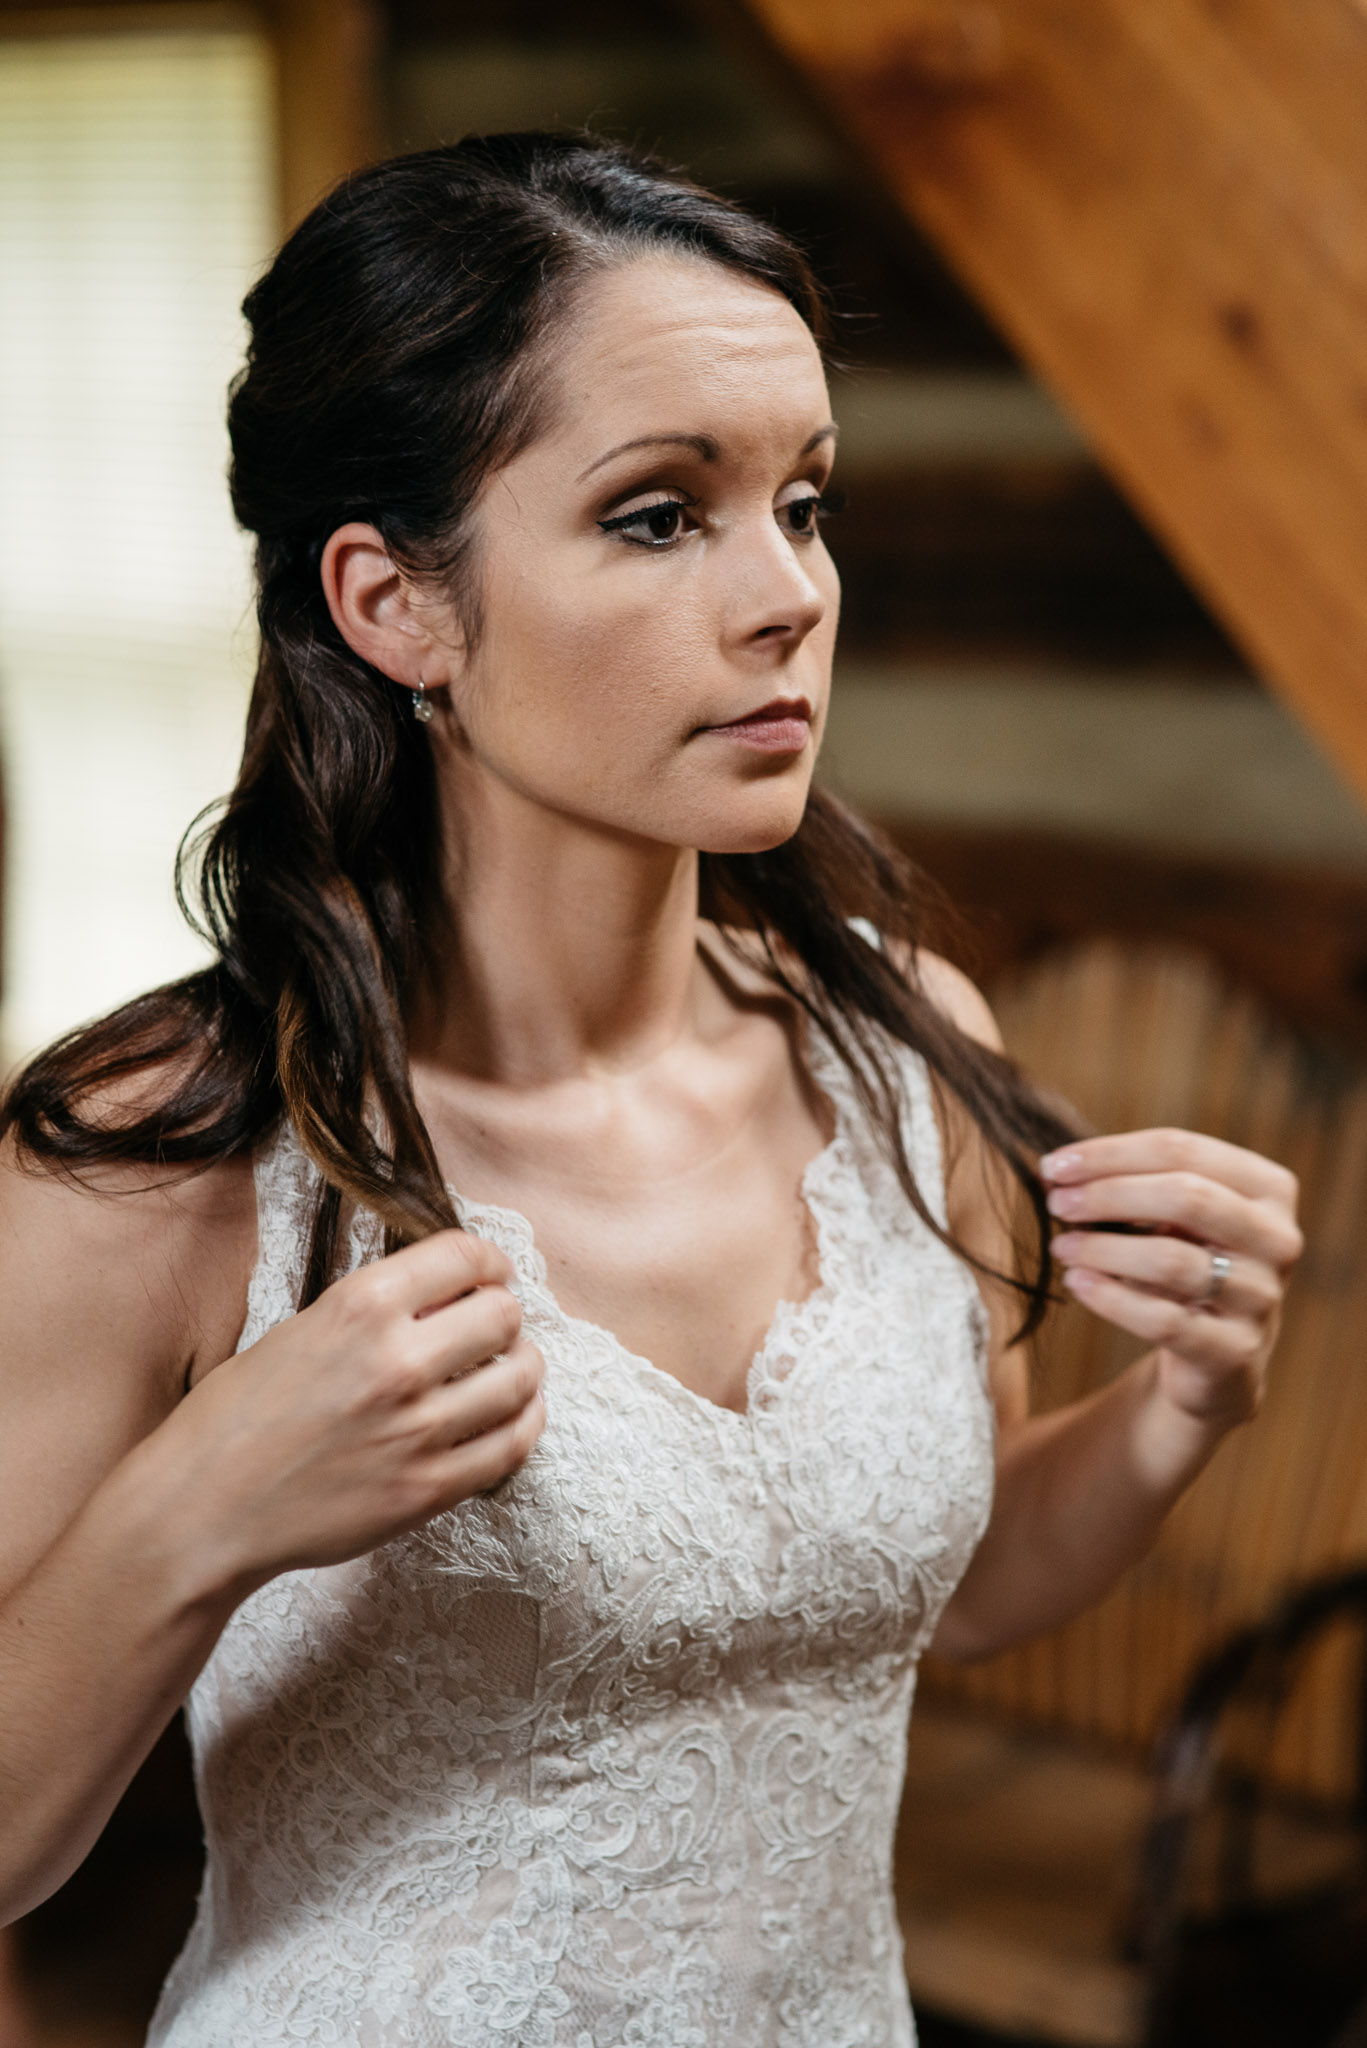 Bride getting ready, The Event Barn at Highland Farms, Somerset PA-9339.jpg